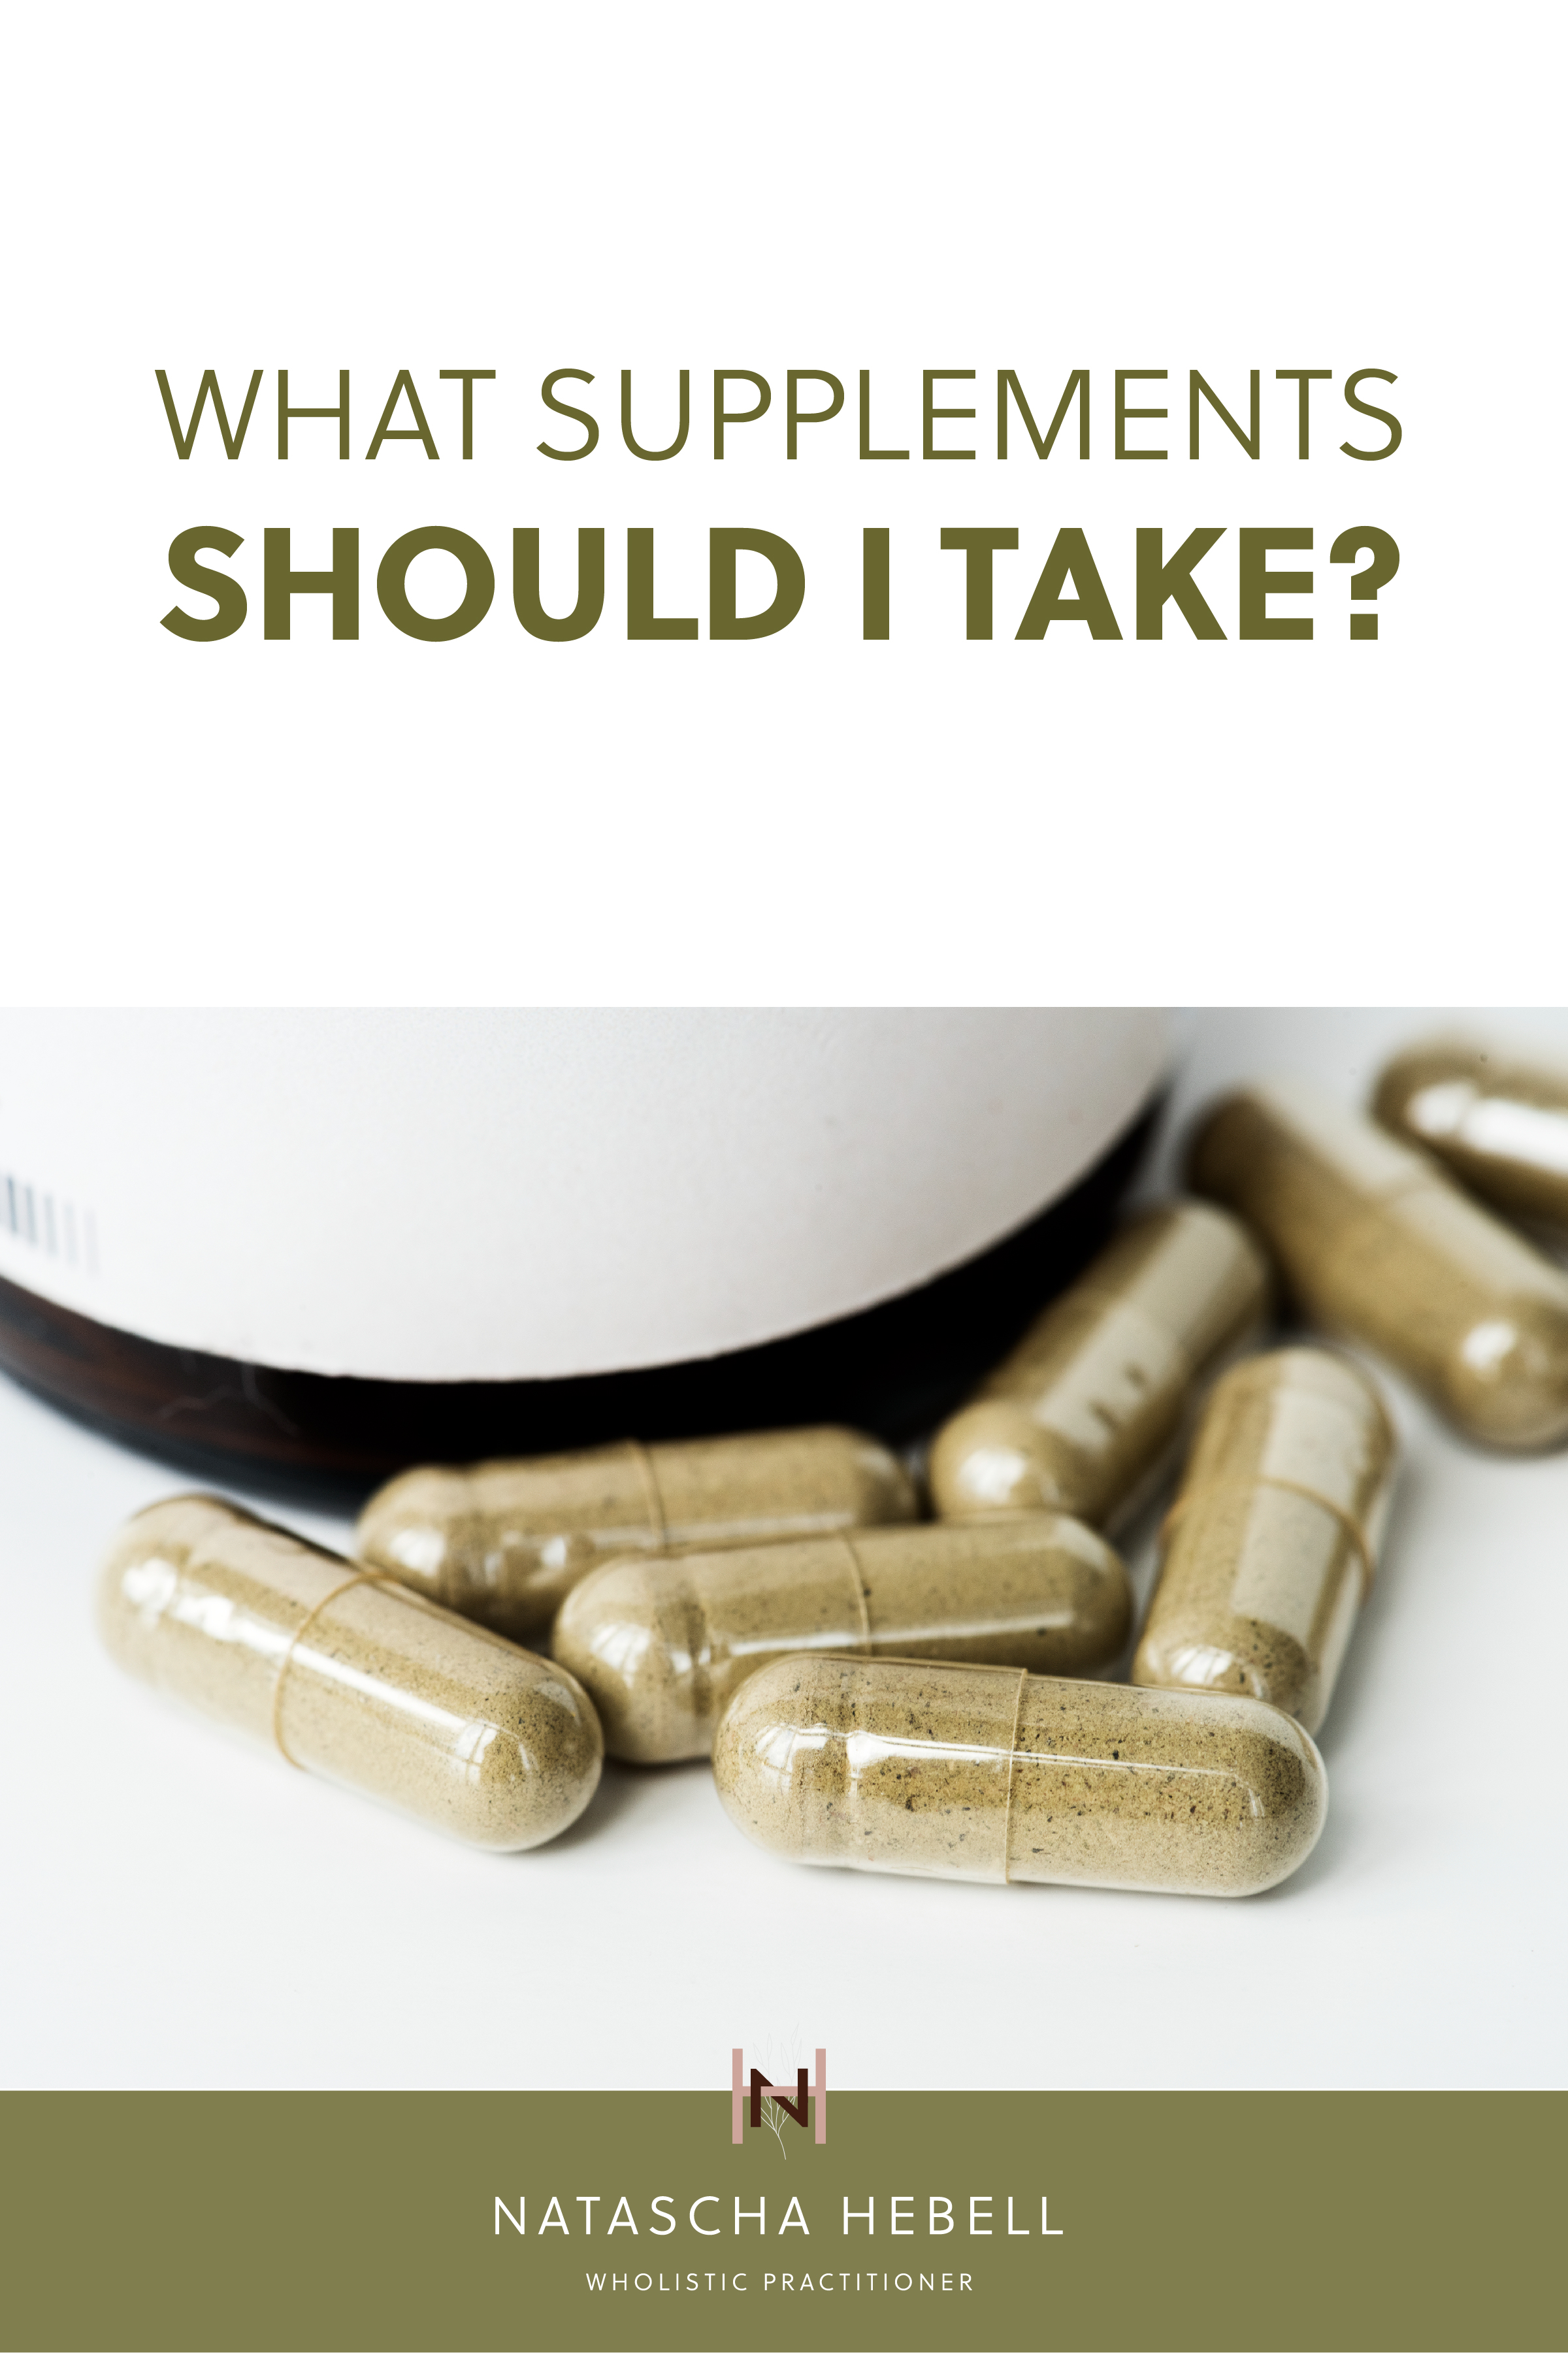 What supplements should I take? | Natascha Hebell, Wholistic Practitioner